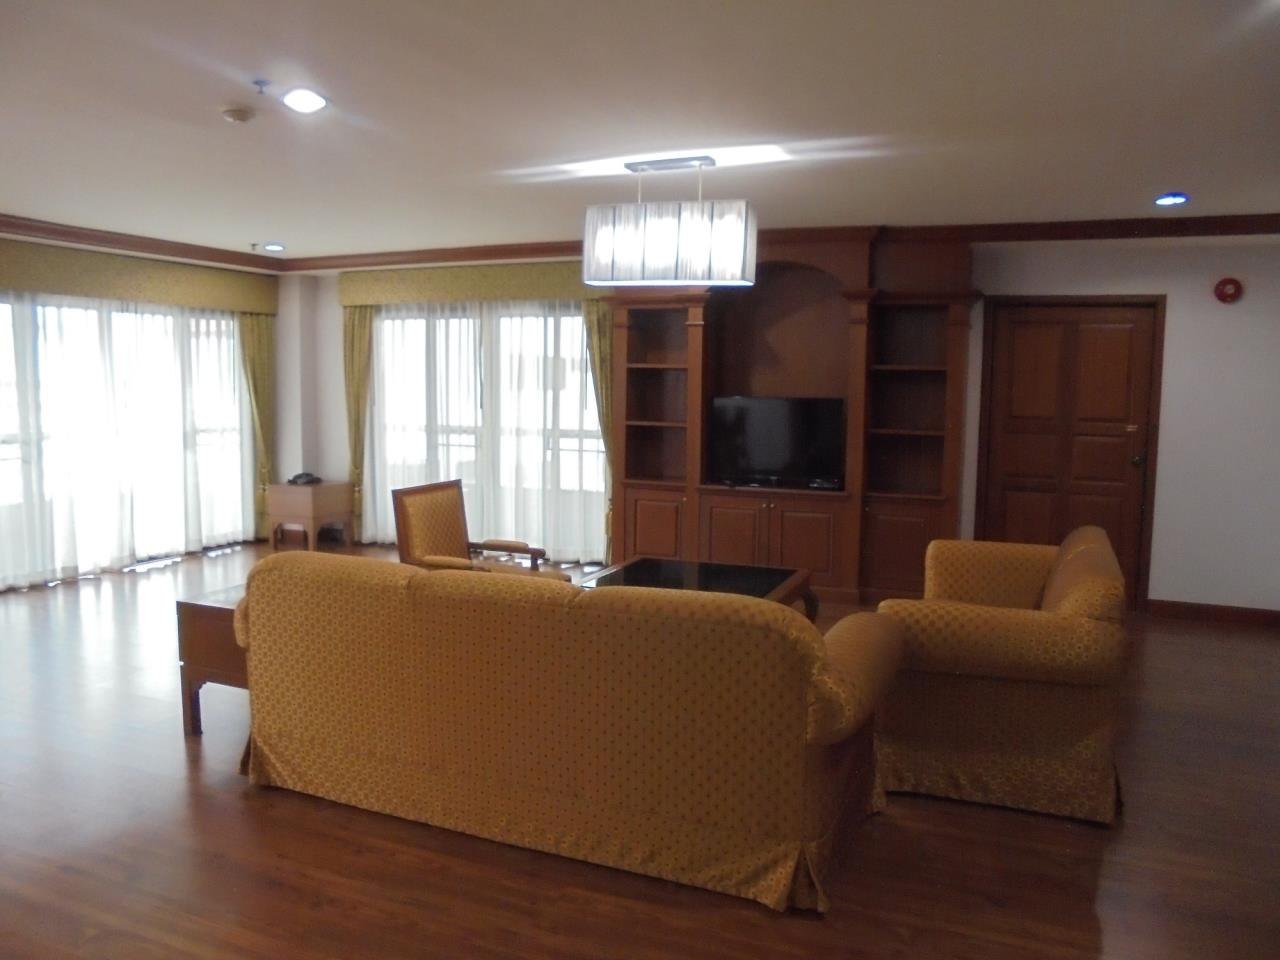 RE/MAX CondoDee Agency's Penthouse for Rent in Asoke - Quite & Central Location 10